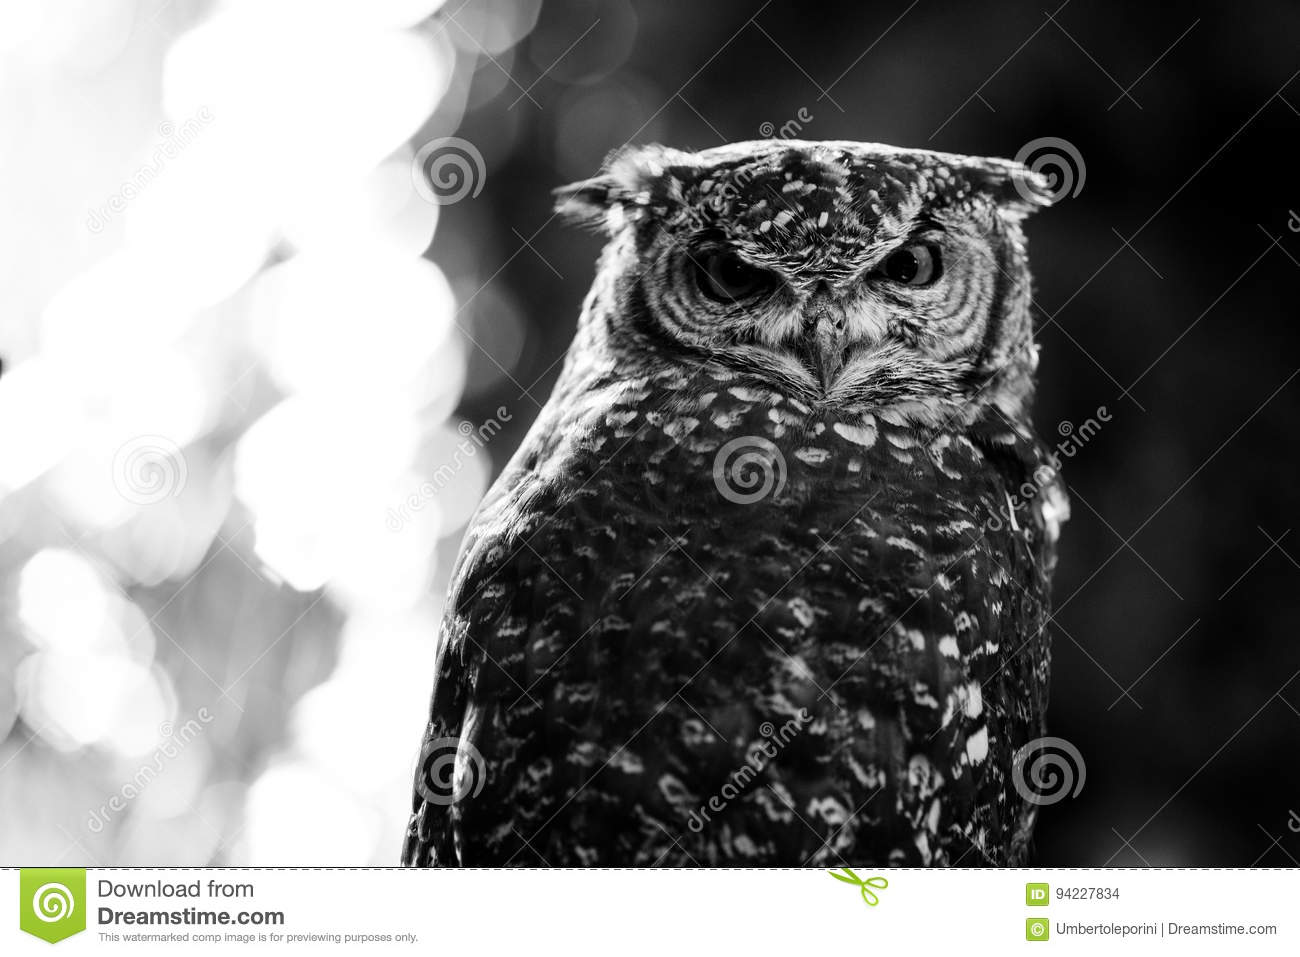 African owl black and white animals portraits stock photo image of